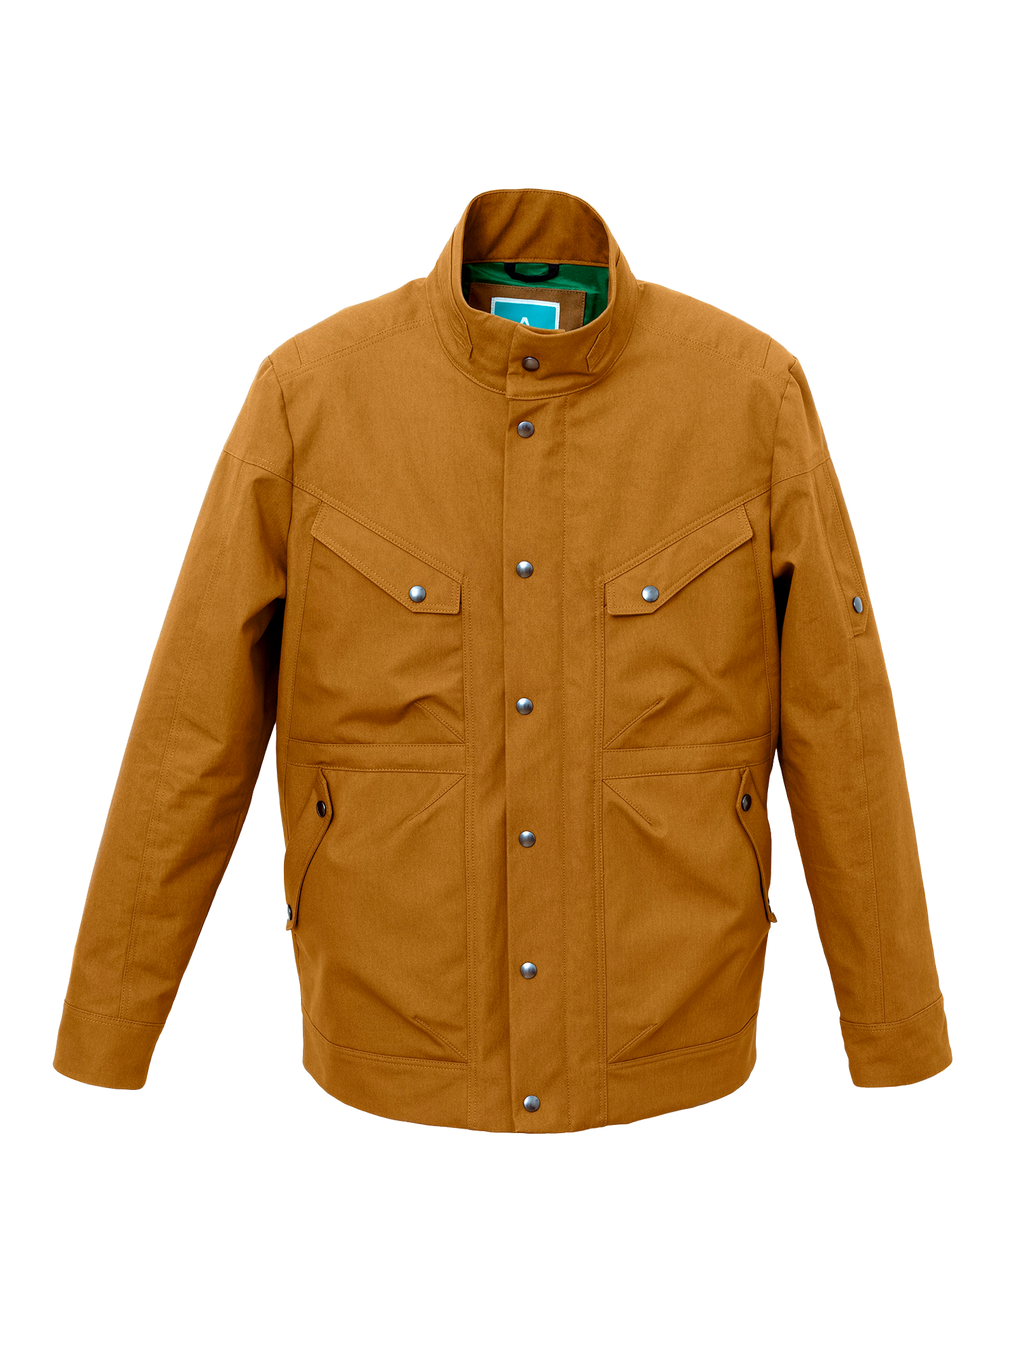 Mens Cotton Cambric Jacket K-201 ATLAS